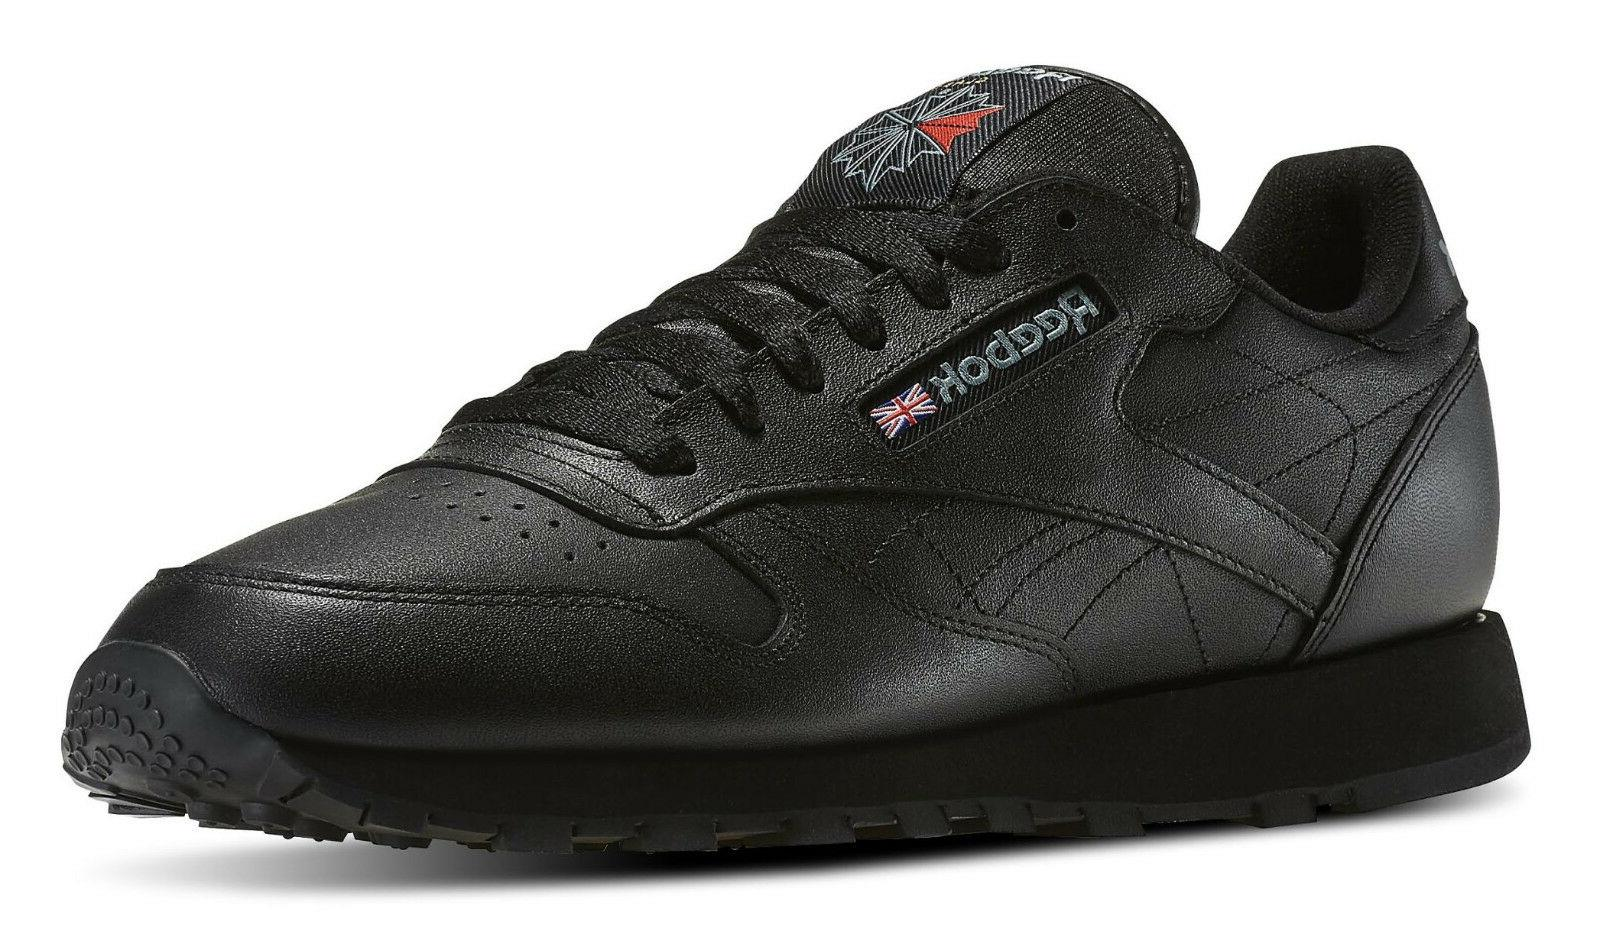 classic leather black mens running tennis shoes